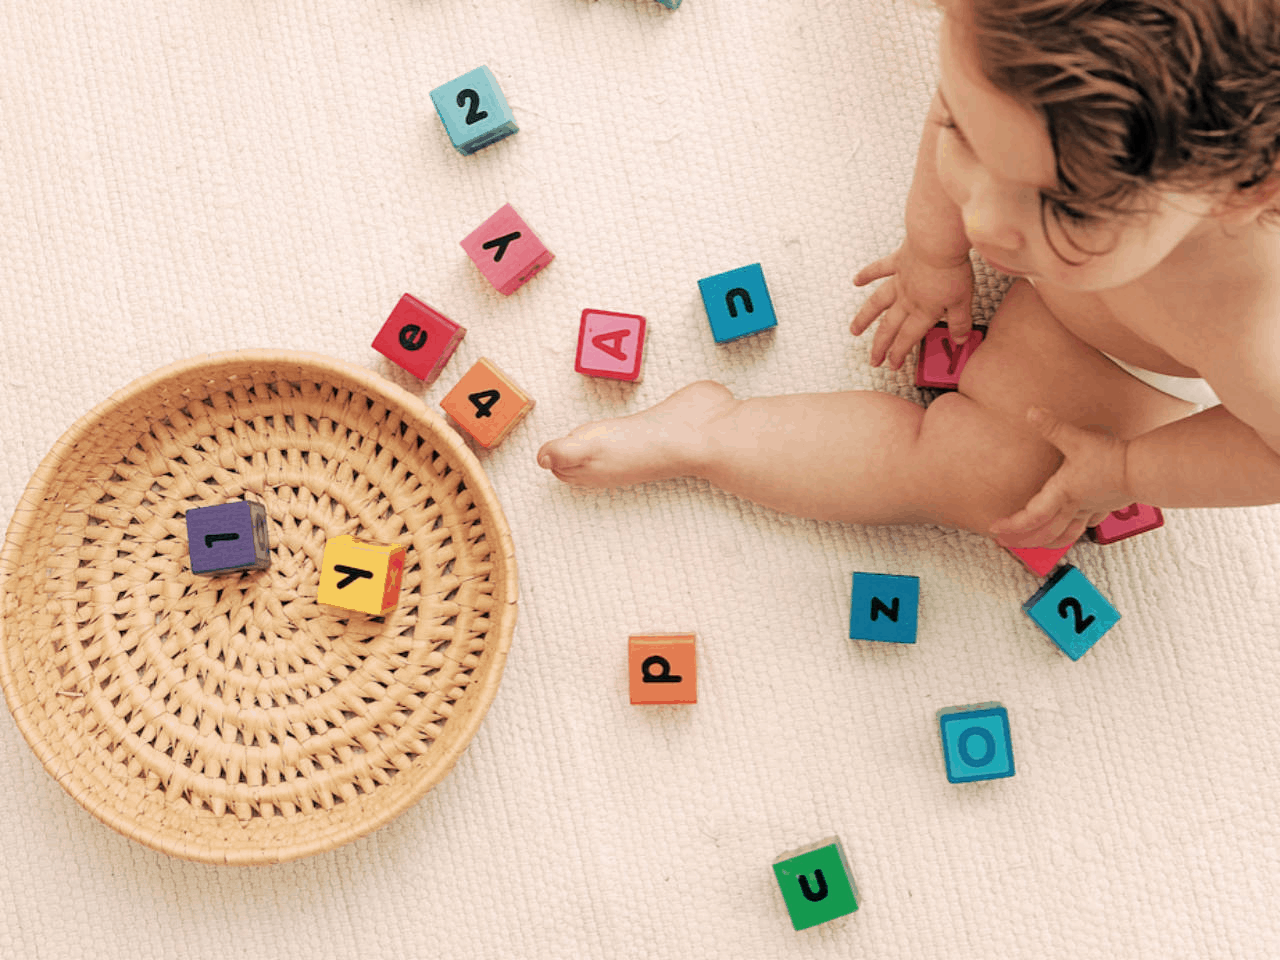 Children won't feel overwhelmed when the goals are breaking down into small and manageable. -7 Effective Ways to Get Toddlers Cleaning Up Toys   Baby Journey